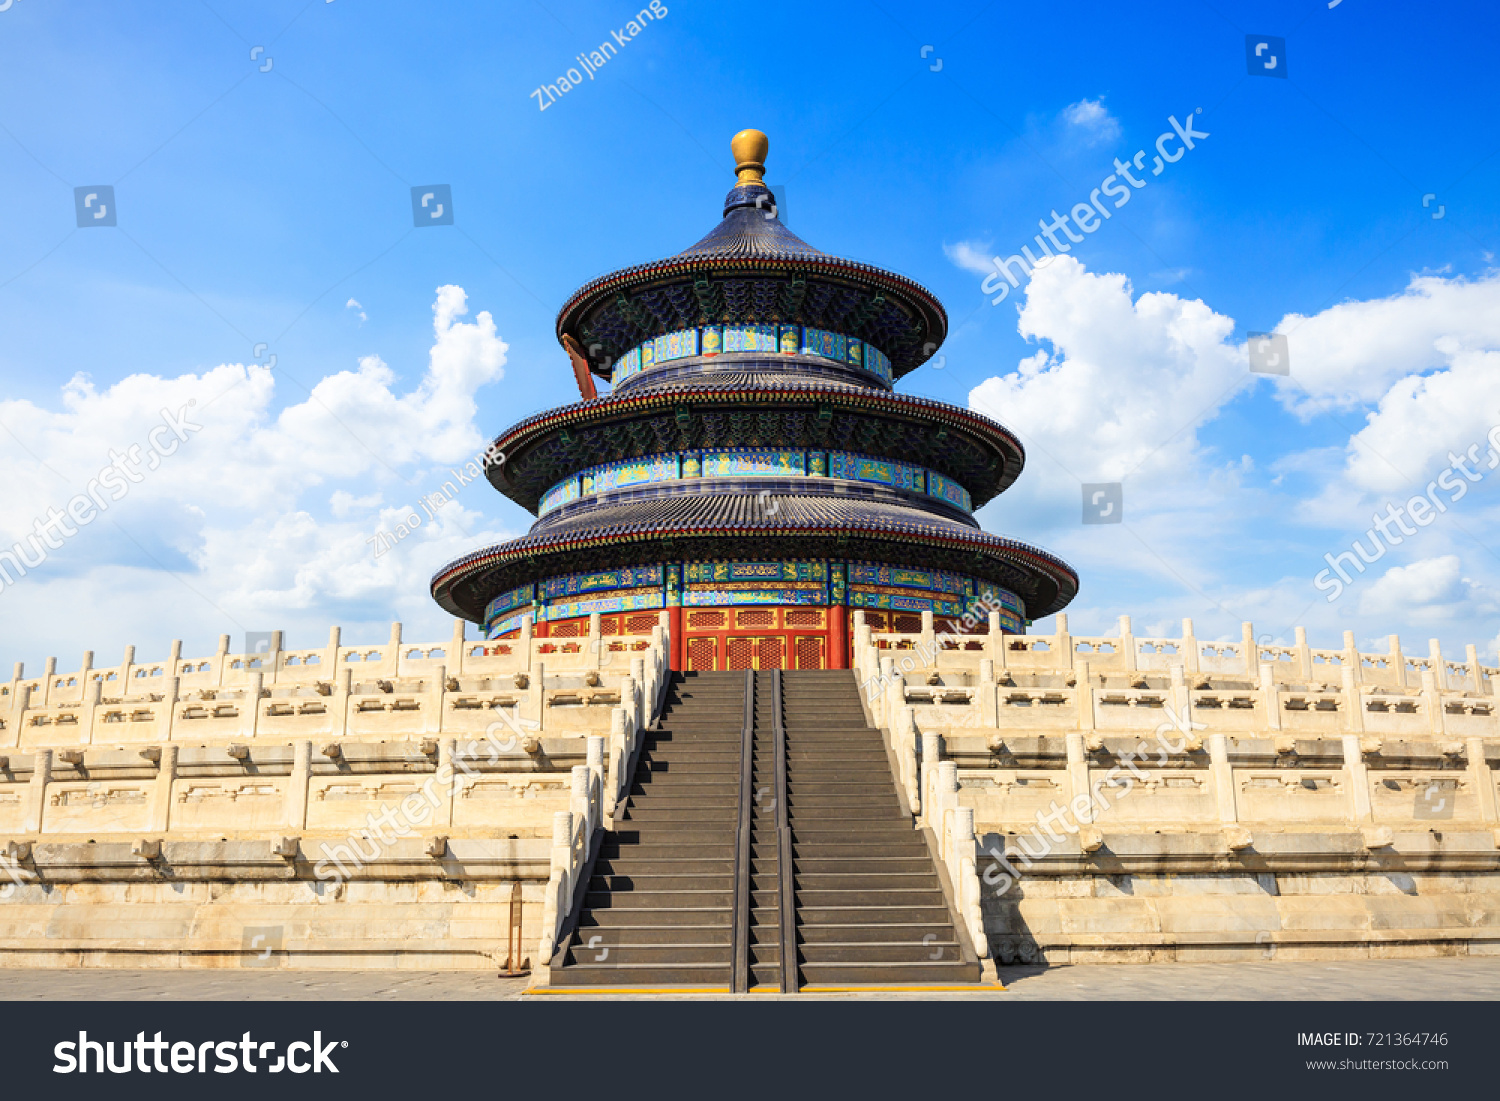 Temple heaven beijingchinese cultural symbols stock photo 721364746 temple heaven beijingchinese cultural symbols stock photo 721364746 shutterstock buycottarizona Gallery